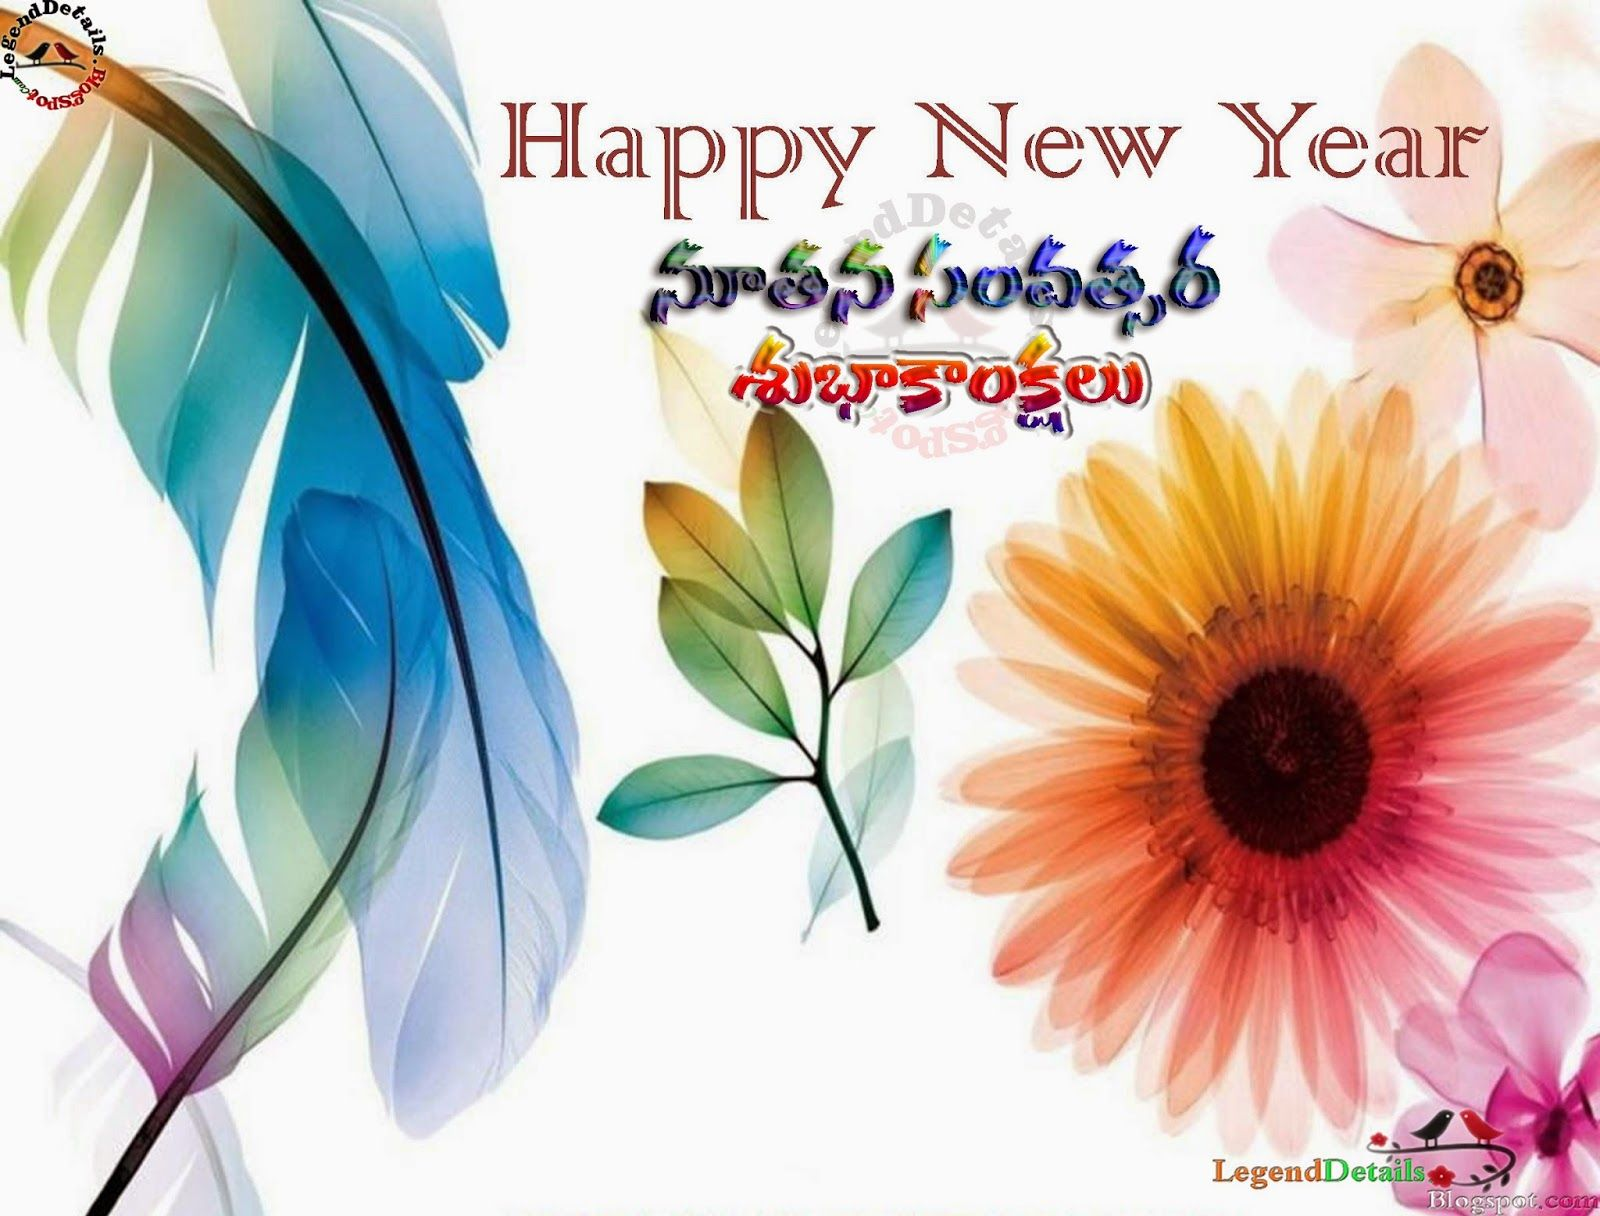 telugu new year greetings 2015 telugu happy new year wallpapers 2015 hd telugu new year quotes telugu new year sms nuthana samvatsara subhakankshalu